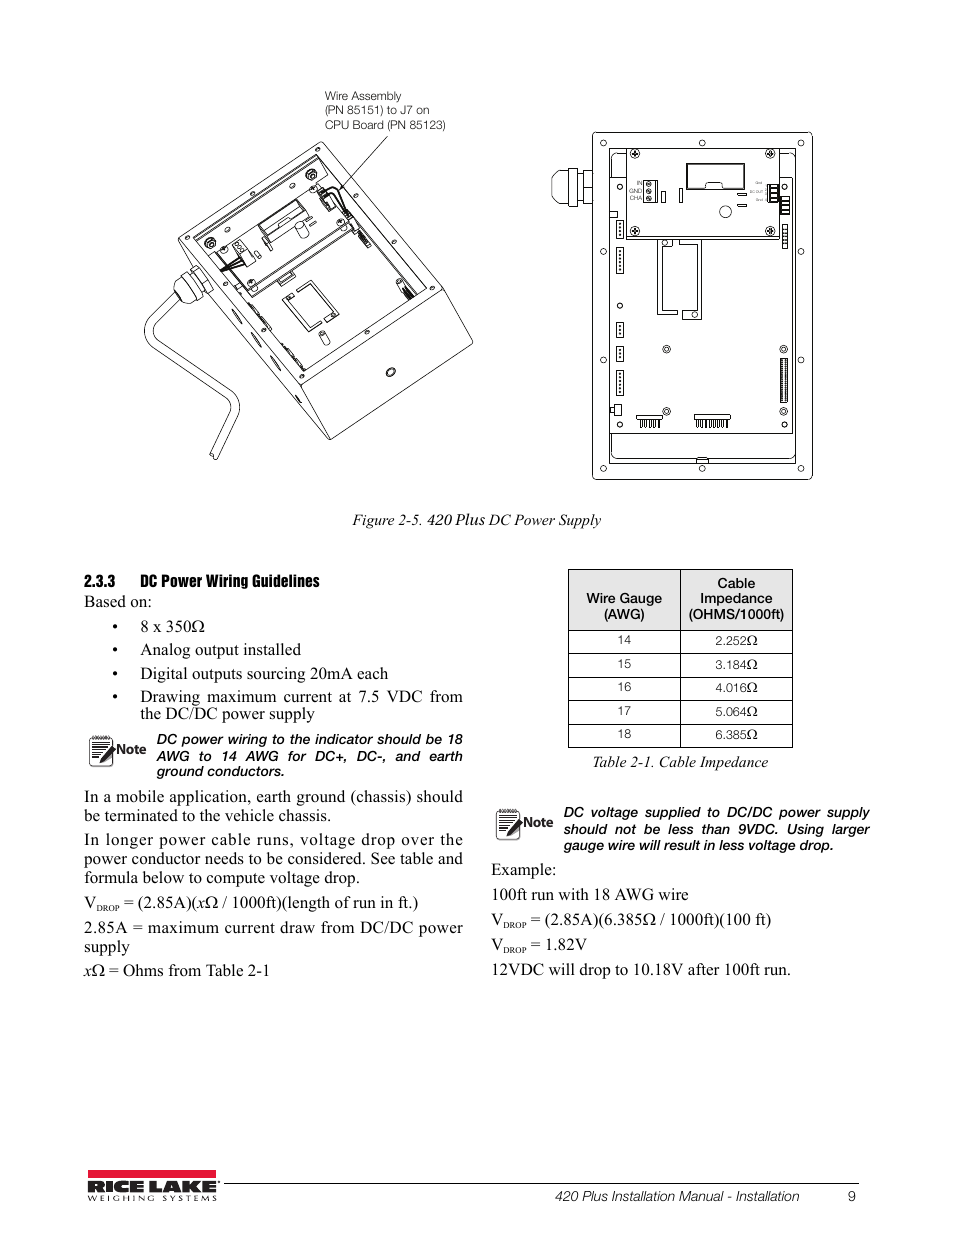 3 Dc Power Wiring Guidelines Rice Lake Hmi Diagram 420 Plus Digital Weight Indicator Installation Manual User Page 13 60